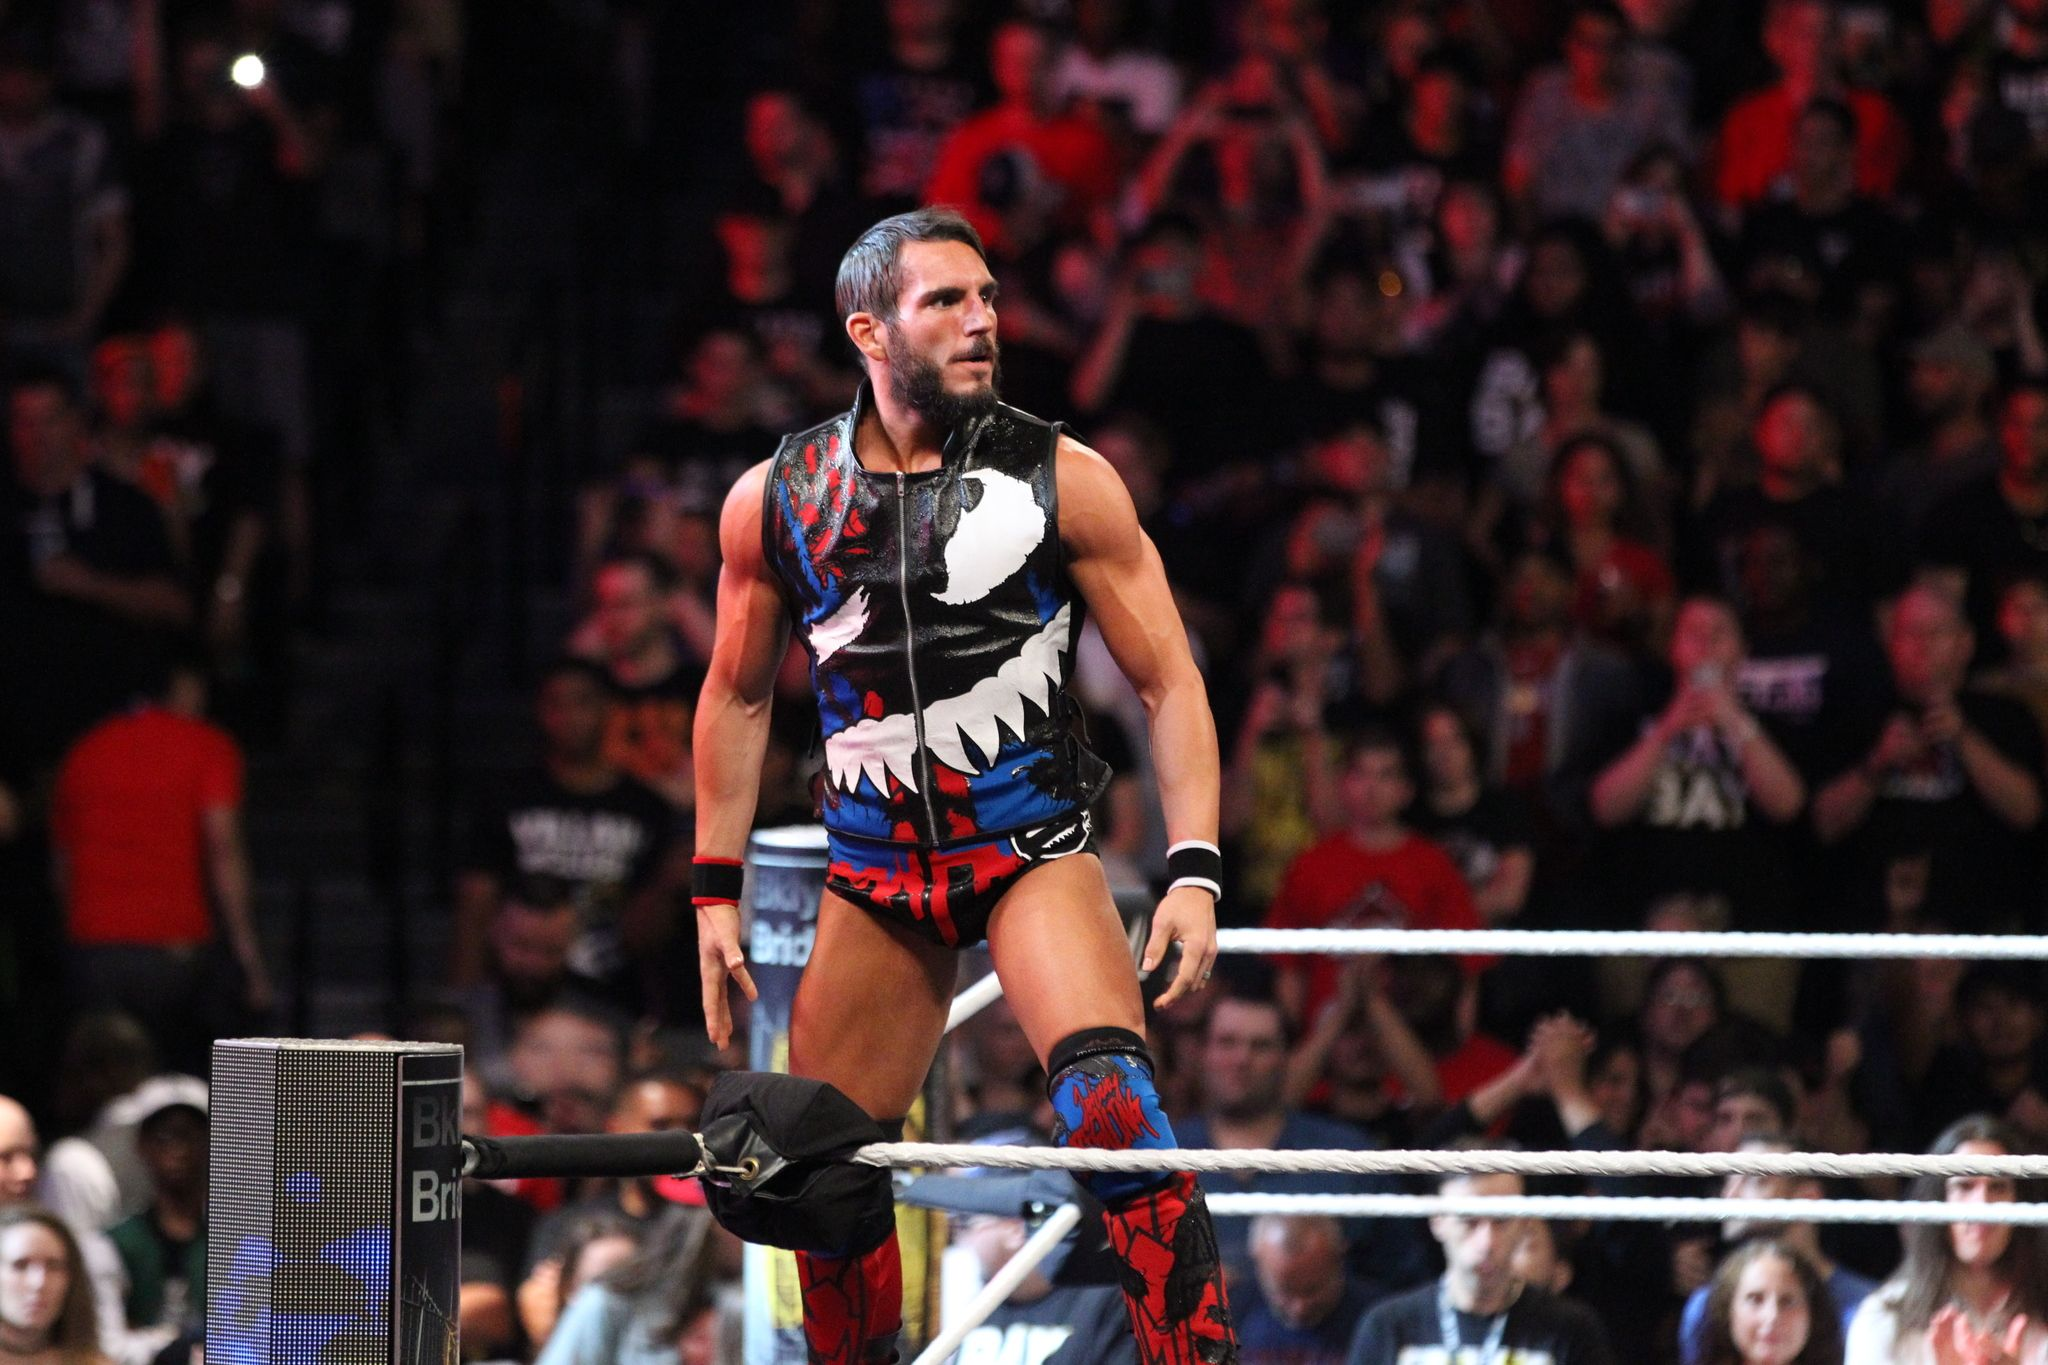 NXT Takeover Brooklyn 4: Johnny Gargano And EC3 Suffer